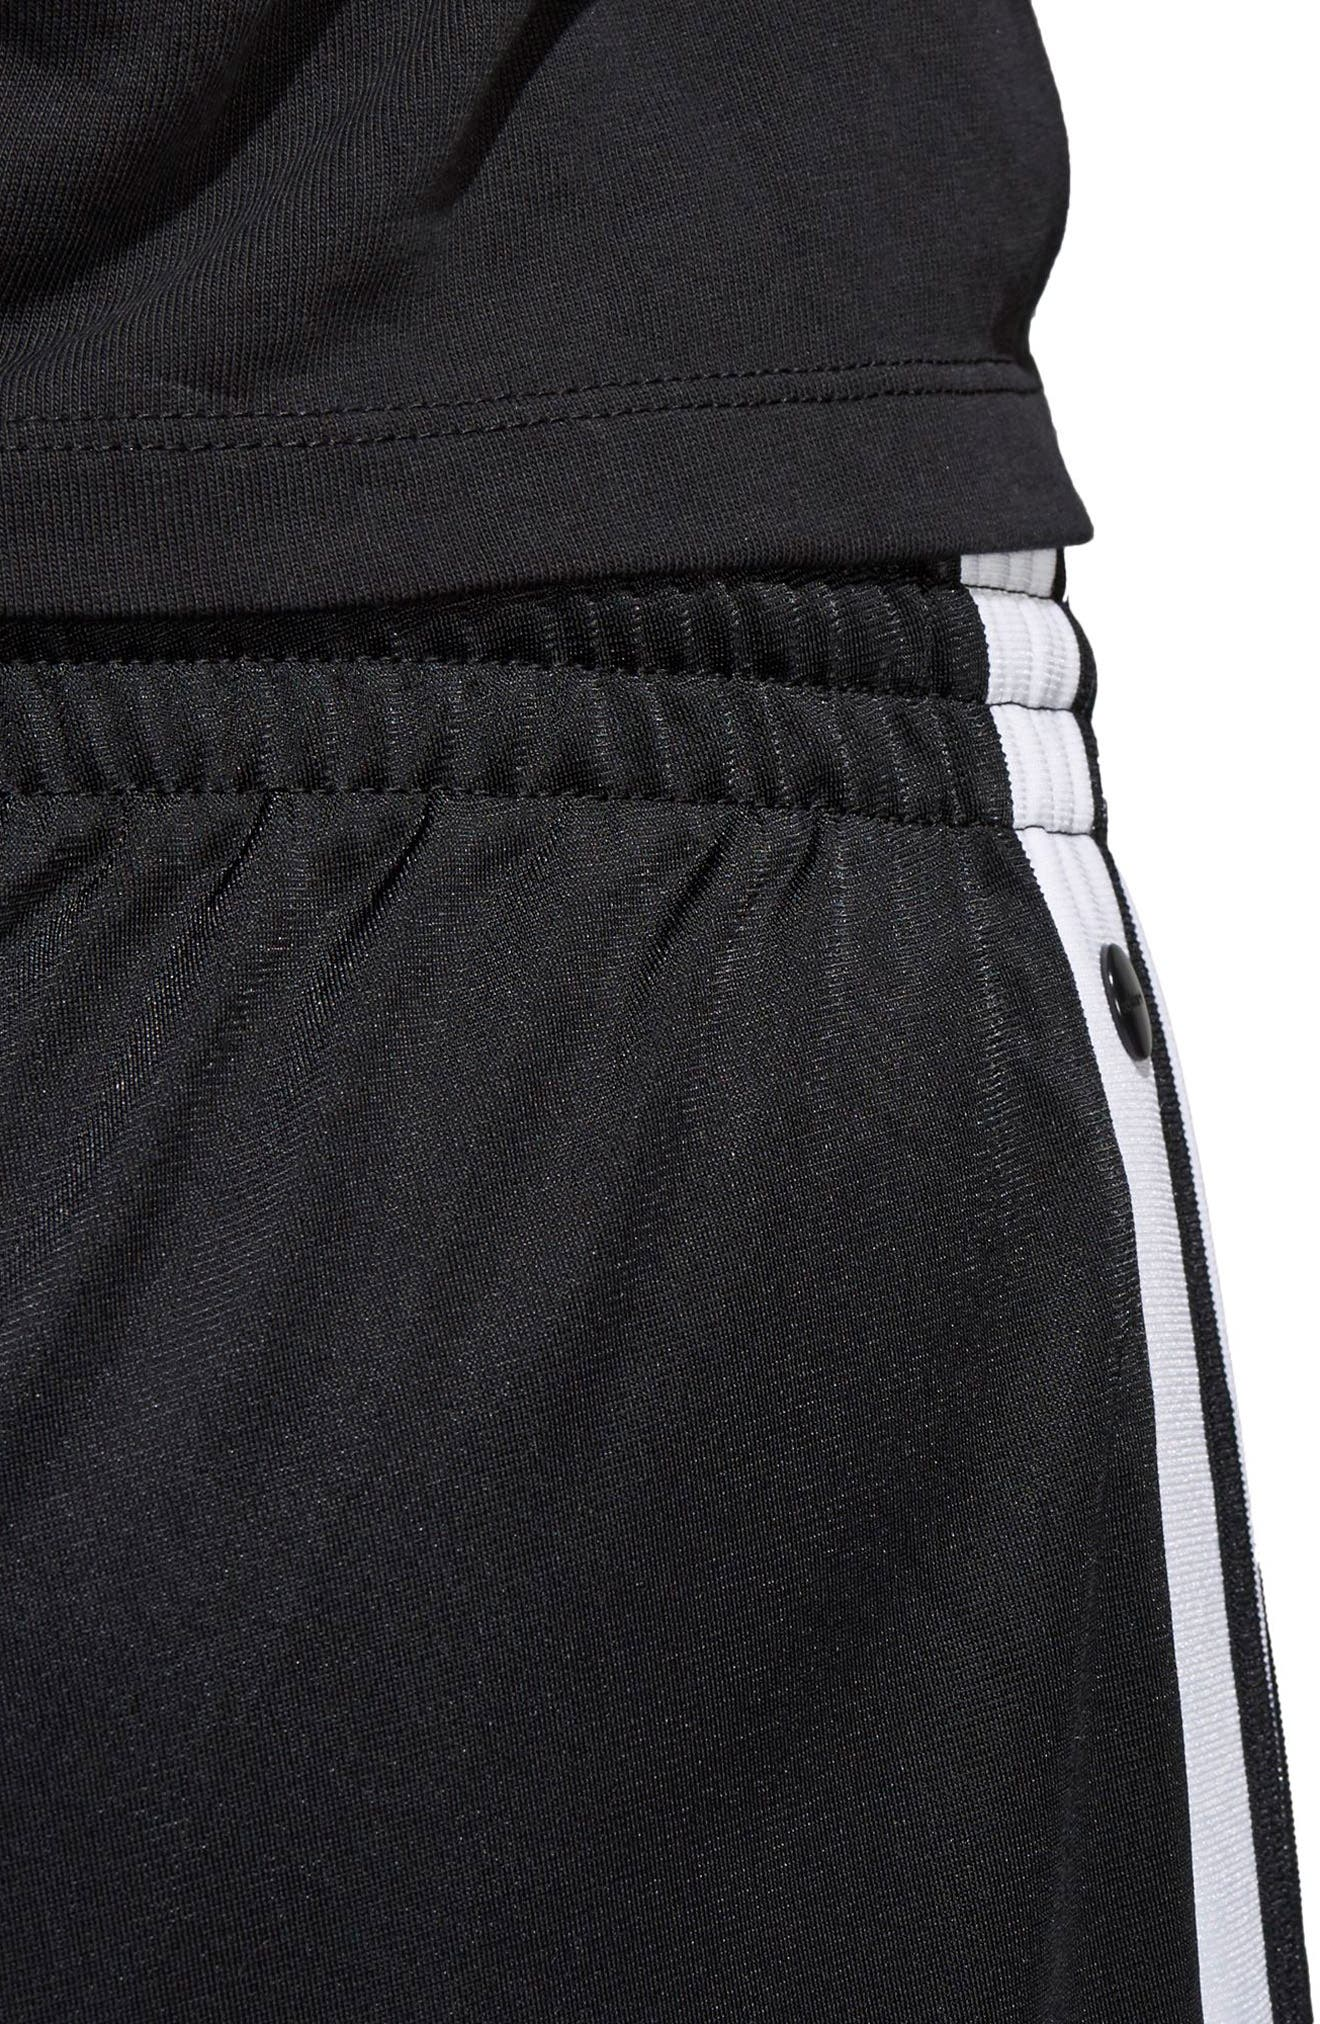 Originals Adibreak Tearaway Track Pants,                             Alternate thumbnail 4, color,                             Black/ Carbon